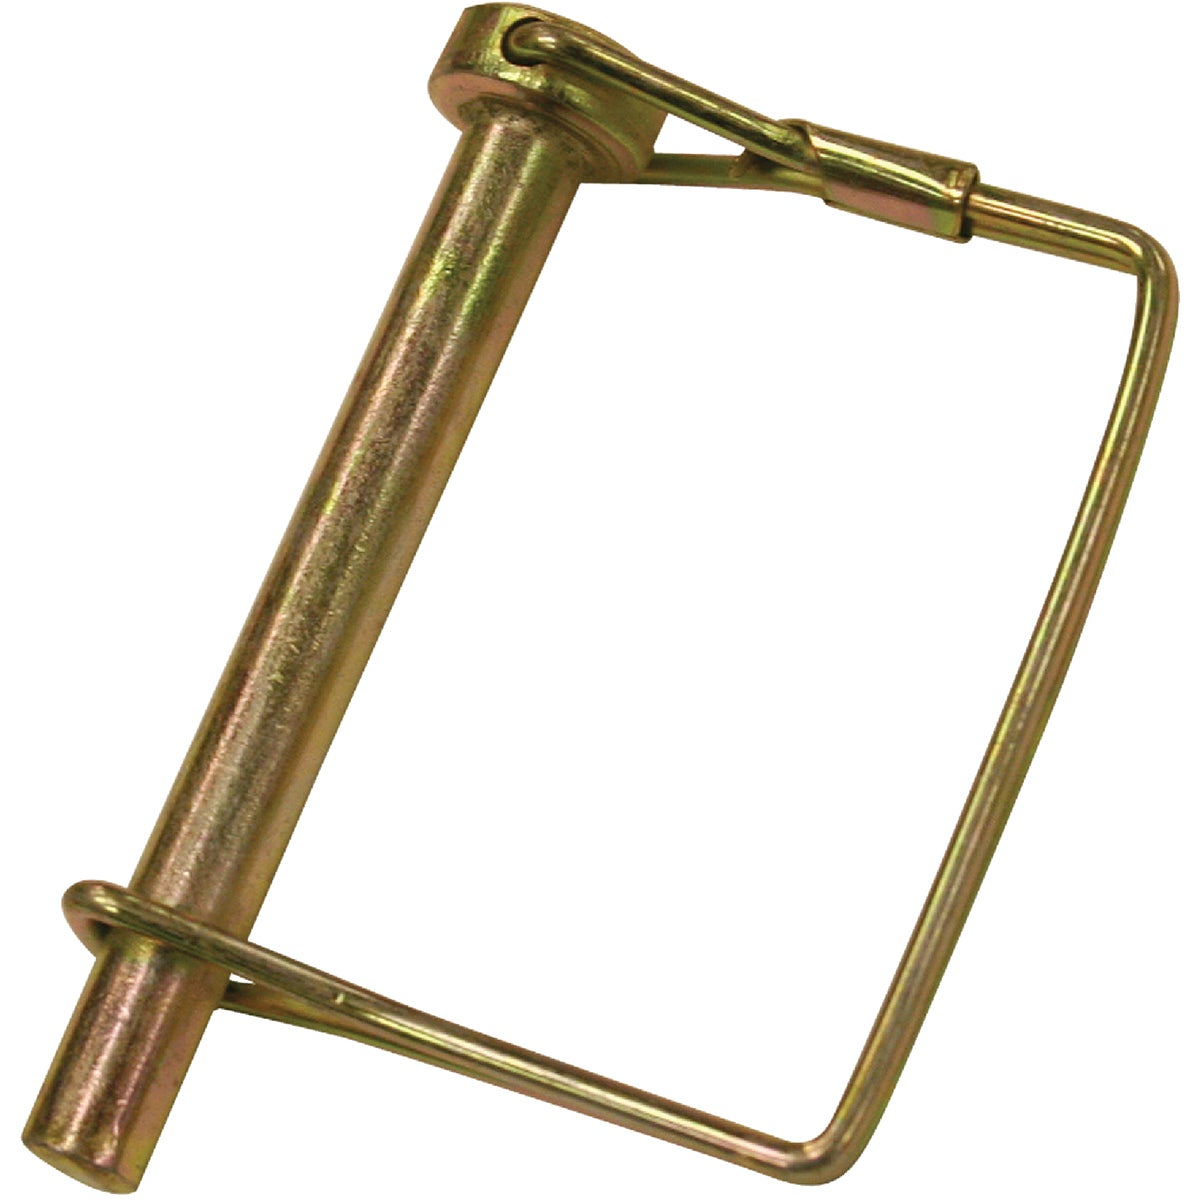 "2PK 5/16"" SQ LOCK PIN - S070939ZBU-P7939ZBU by Speeco Farmex"